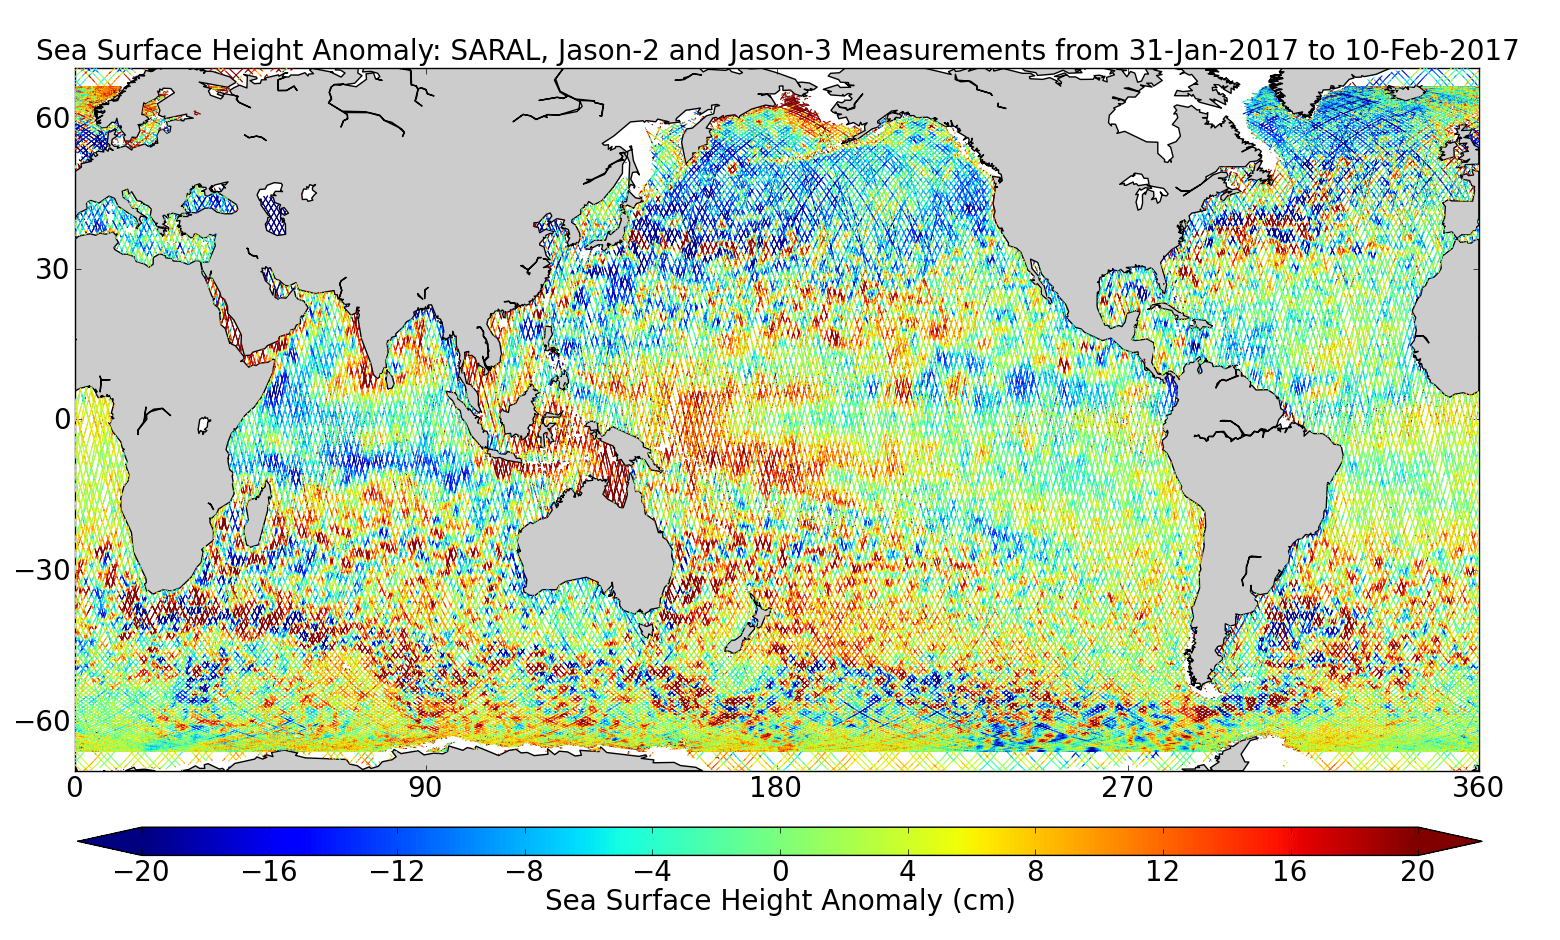 Sea Surface Height Anomaly: SARAL, Jason-2 and Jason-3 Measurements from 31-Jan-2017 to 10-Feb-2017